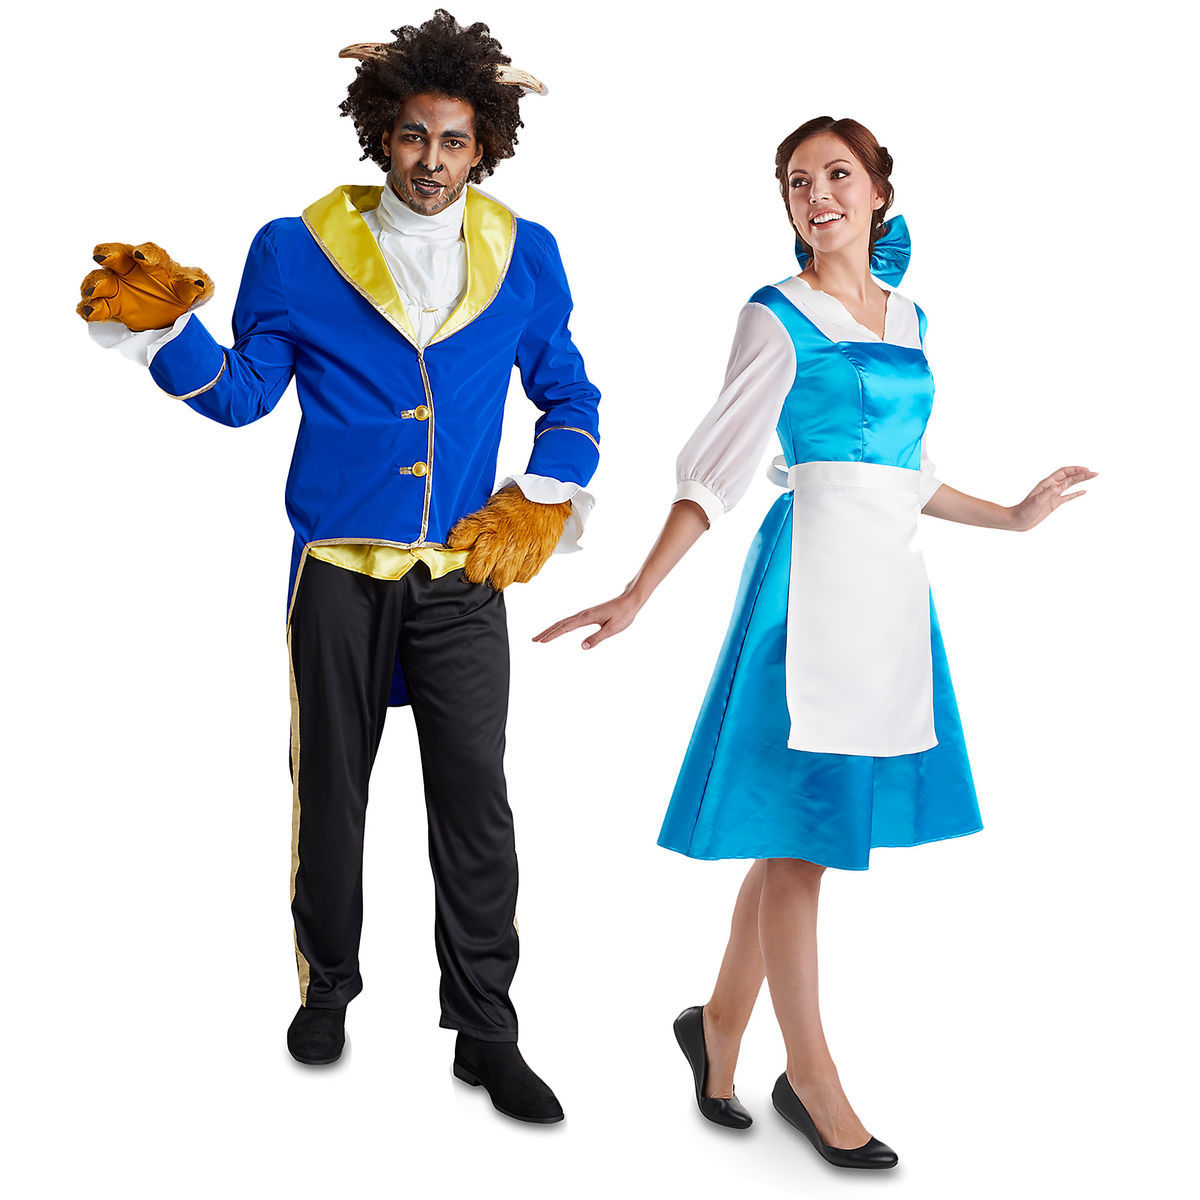 beauty and the beast costume collection for adults | shopdisney